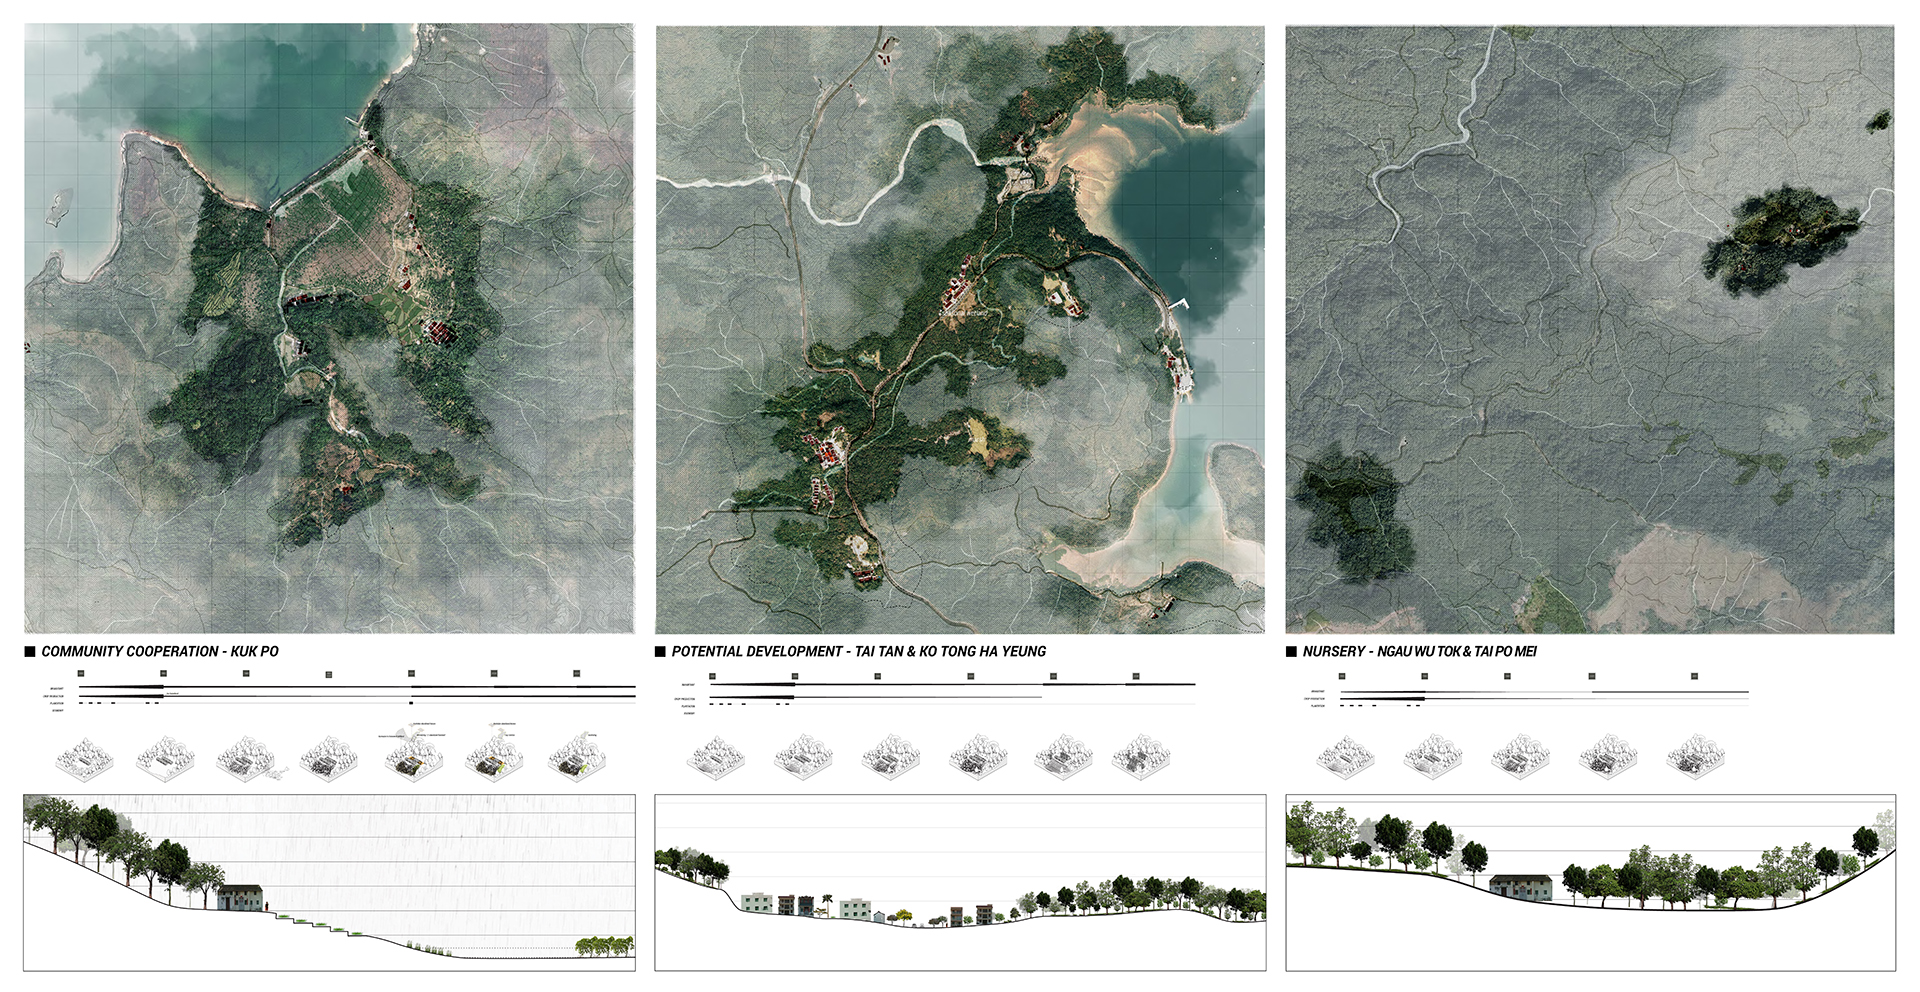 Enlarge Photo: Site Implementation Imagination: Community Cooperation in Kuk Po, Development Potential in Tai Tan & Ko Tong Ha Yeung, and Nursery in Ngau Wu Tok & Tai Po Mei. By KWONG Wai Lam Rae.